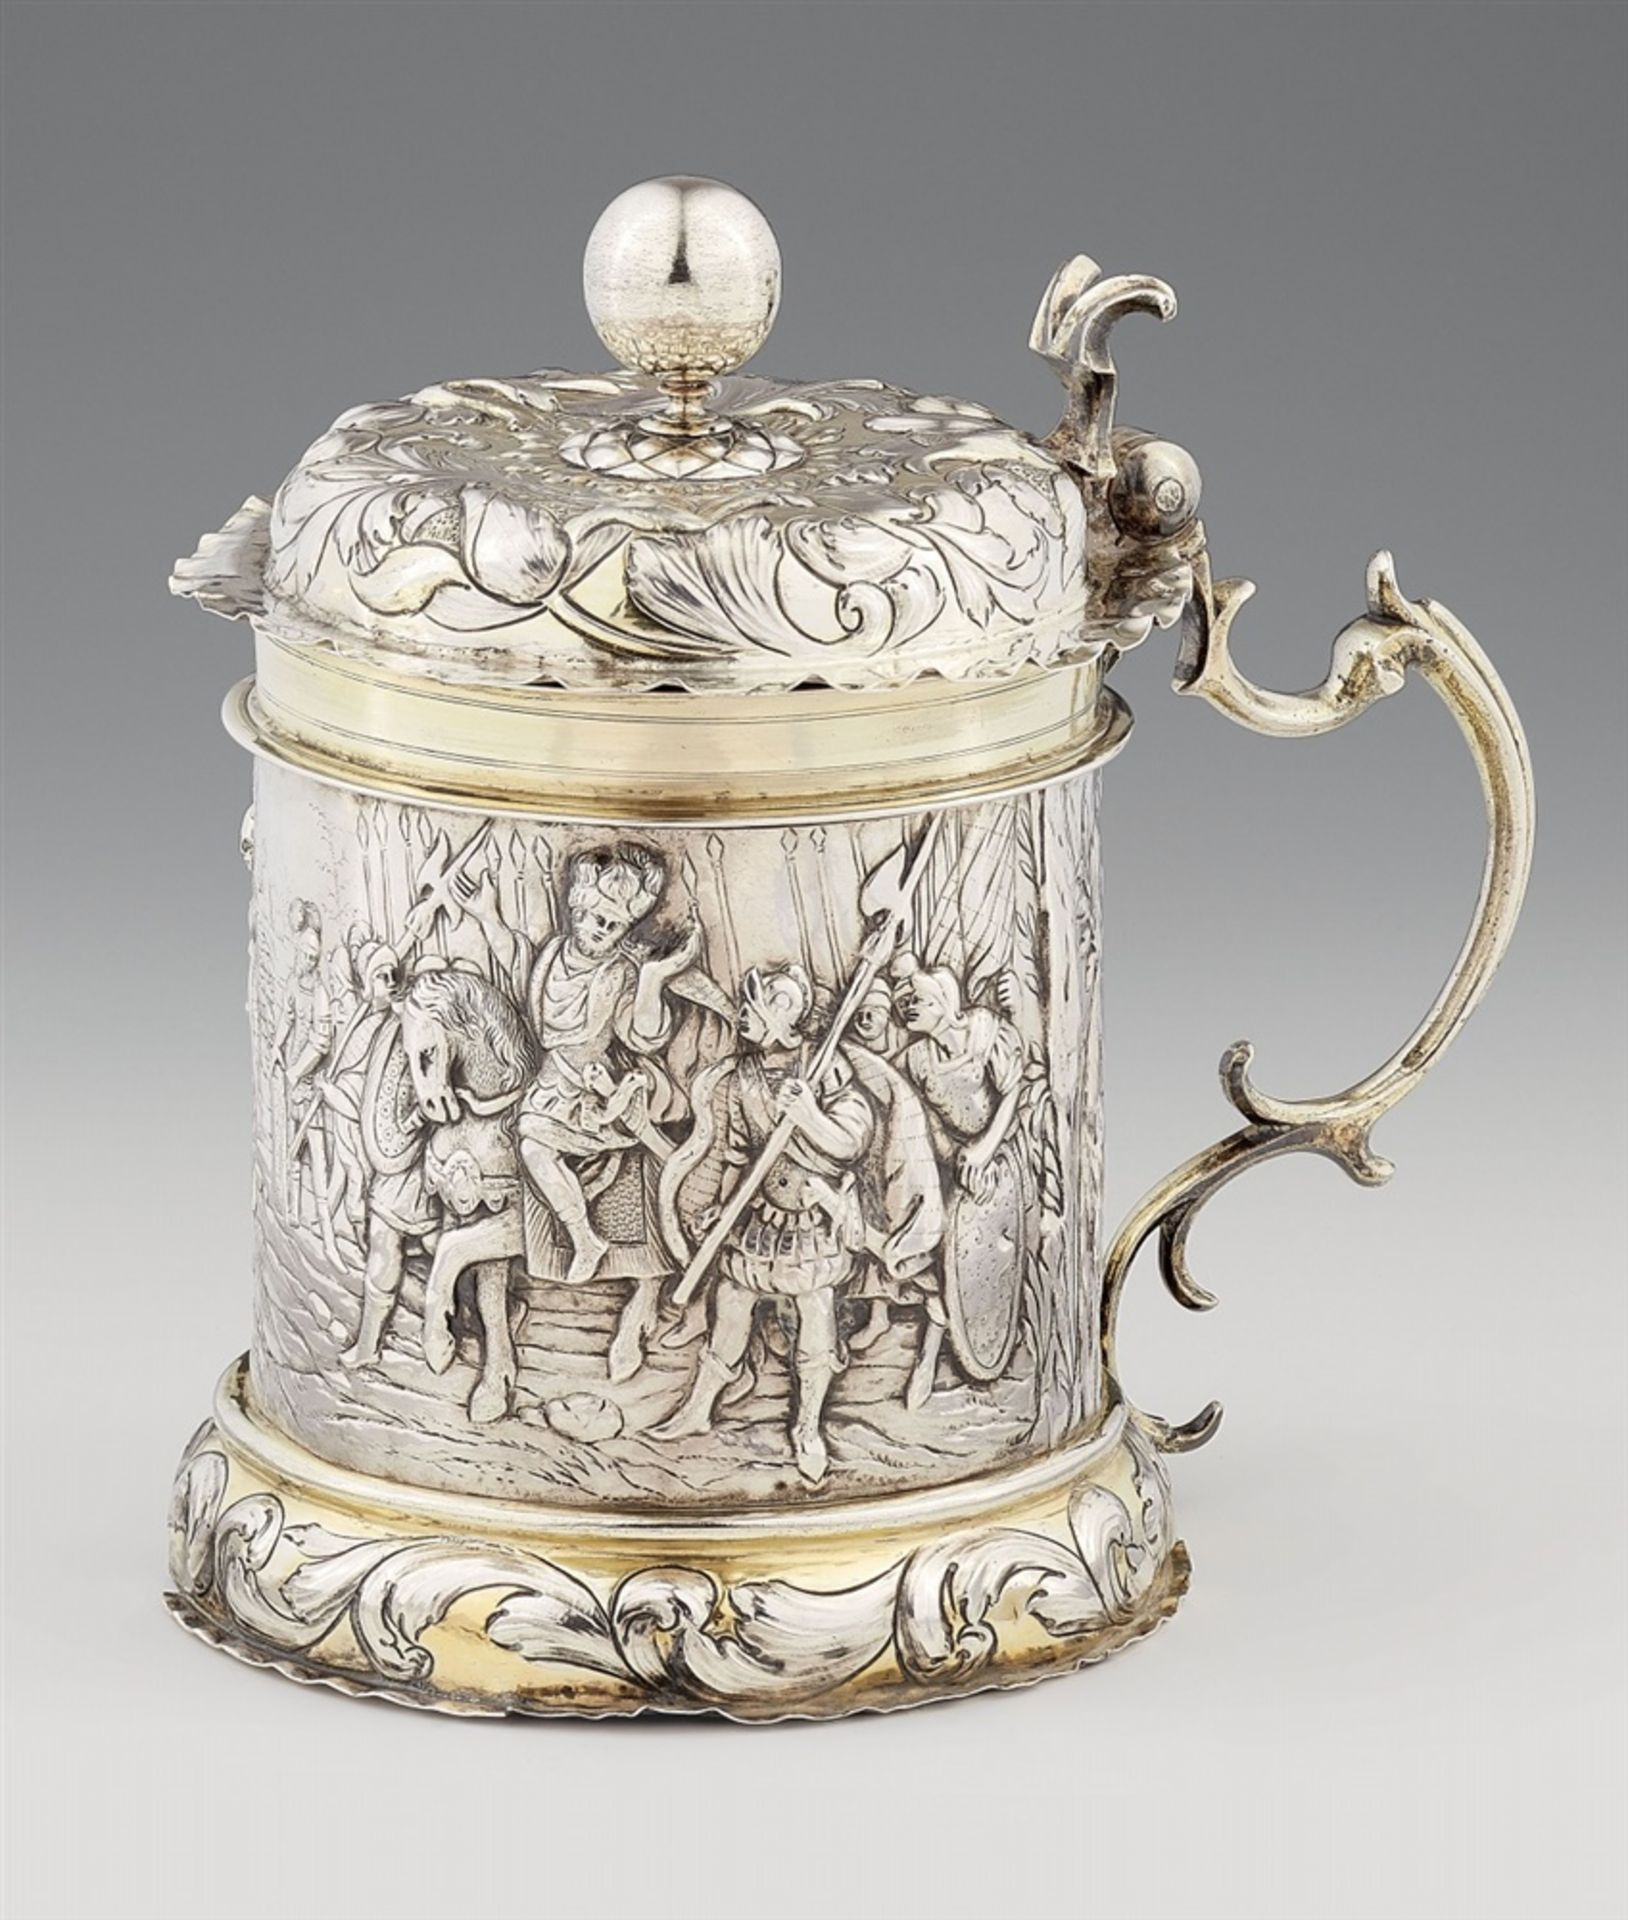 Los 707 - An Augsburg Baroque silver tankardSilver; partly gilded. Parcel-gilt silver tankard with a domed